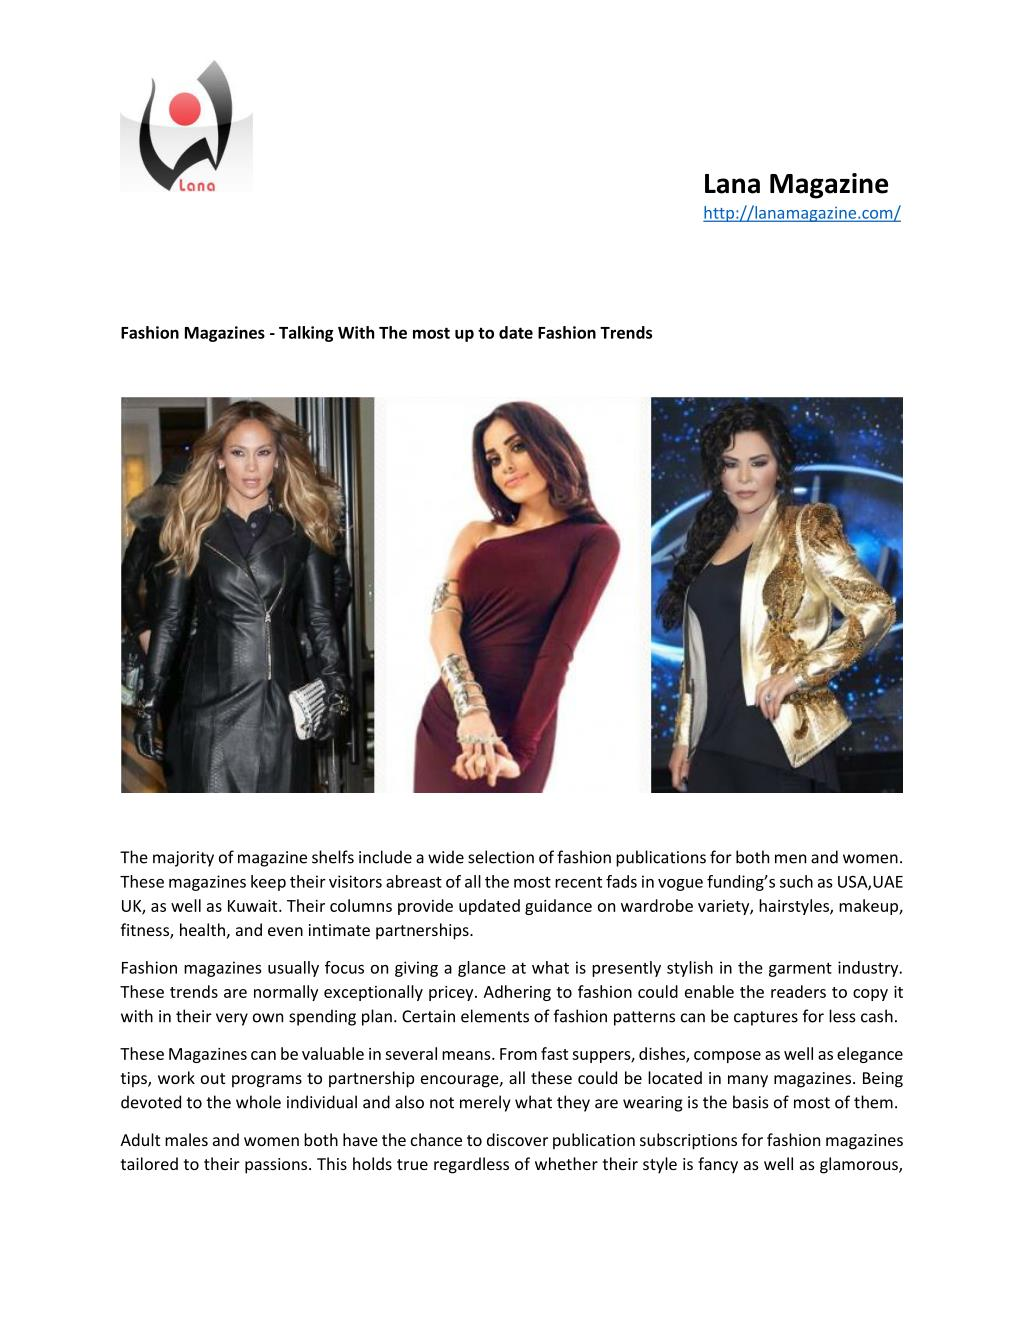 Ppt Fashion Magazines Talking With The Most Up To Date Fashion Trends Powerpoint Presentation Id 7331311